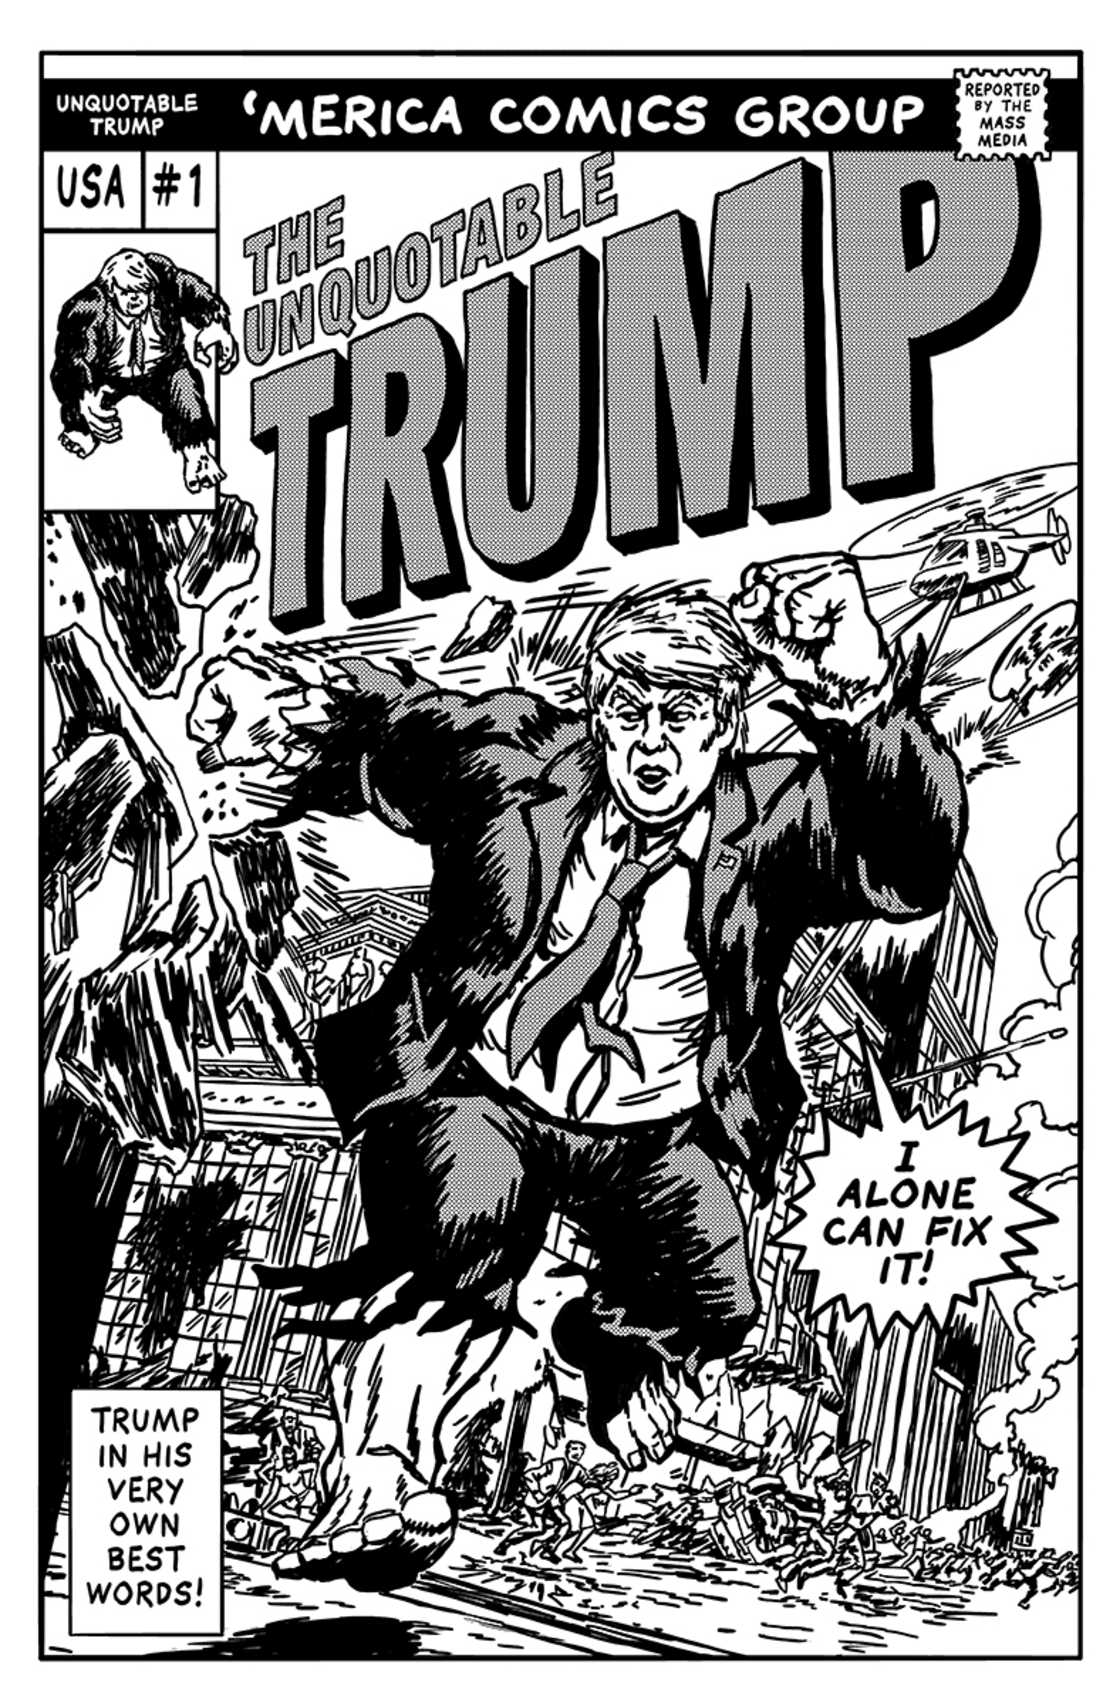 The Unquotable Trump - Transformer les citations de Trump en comics celebres